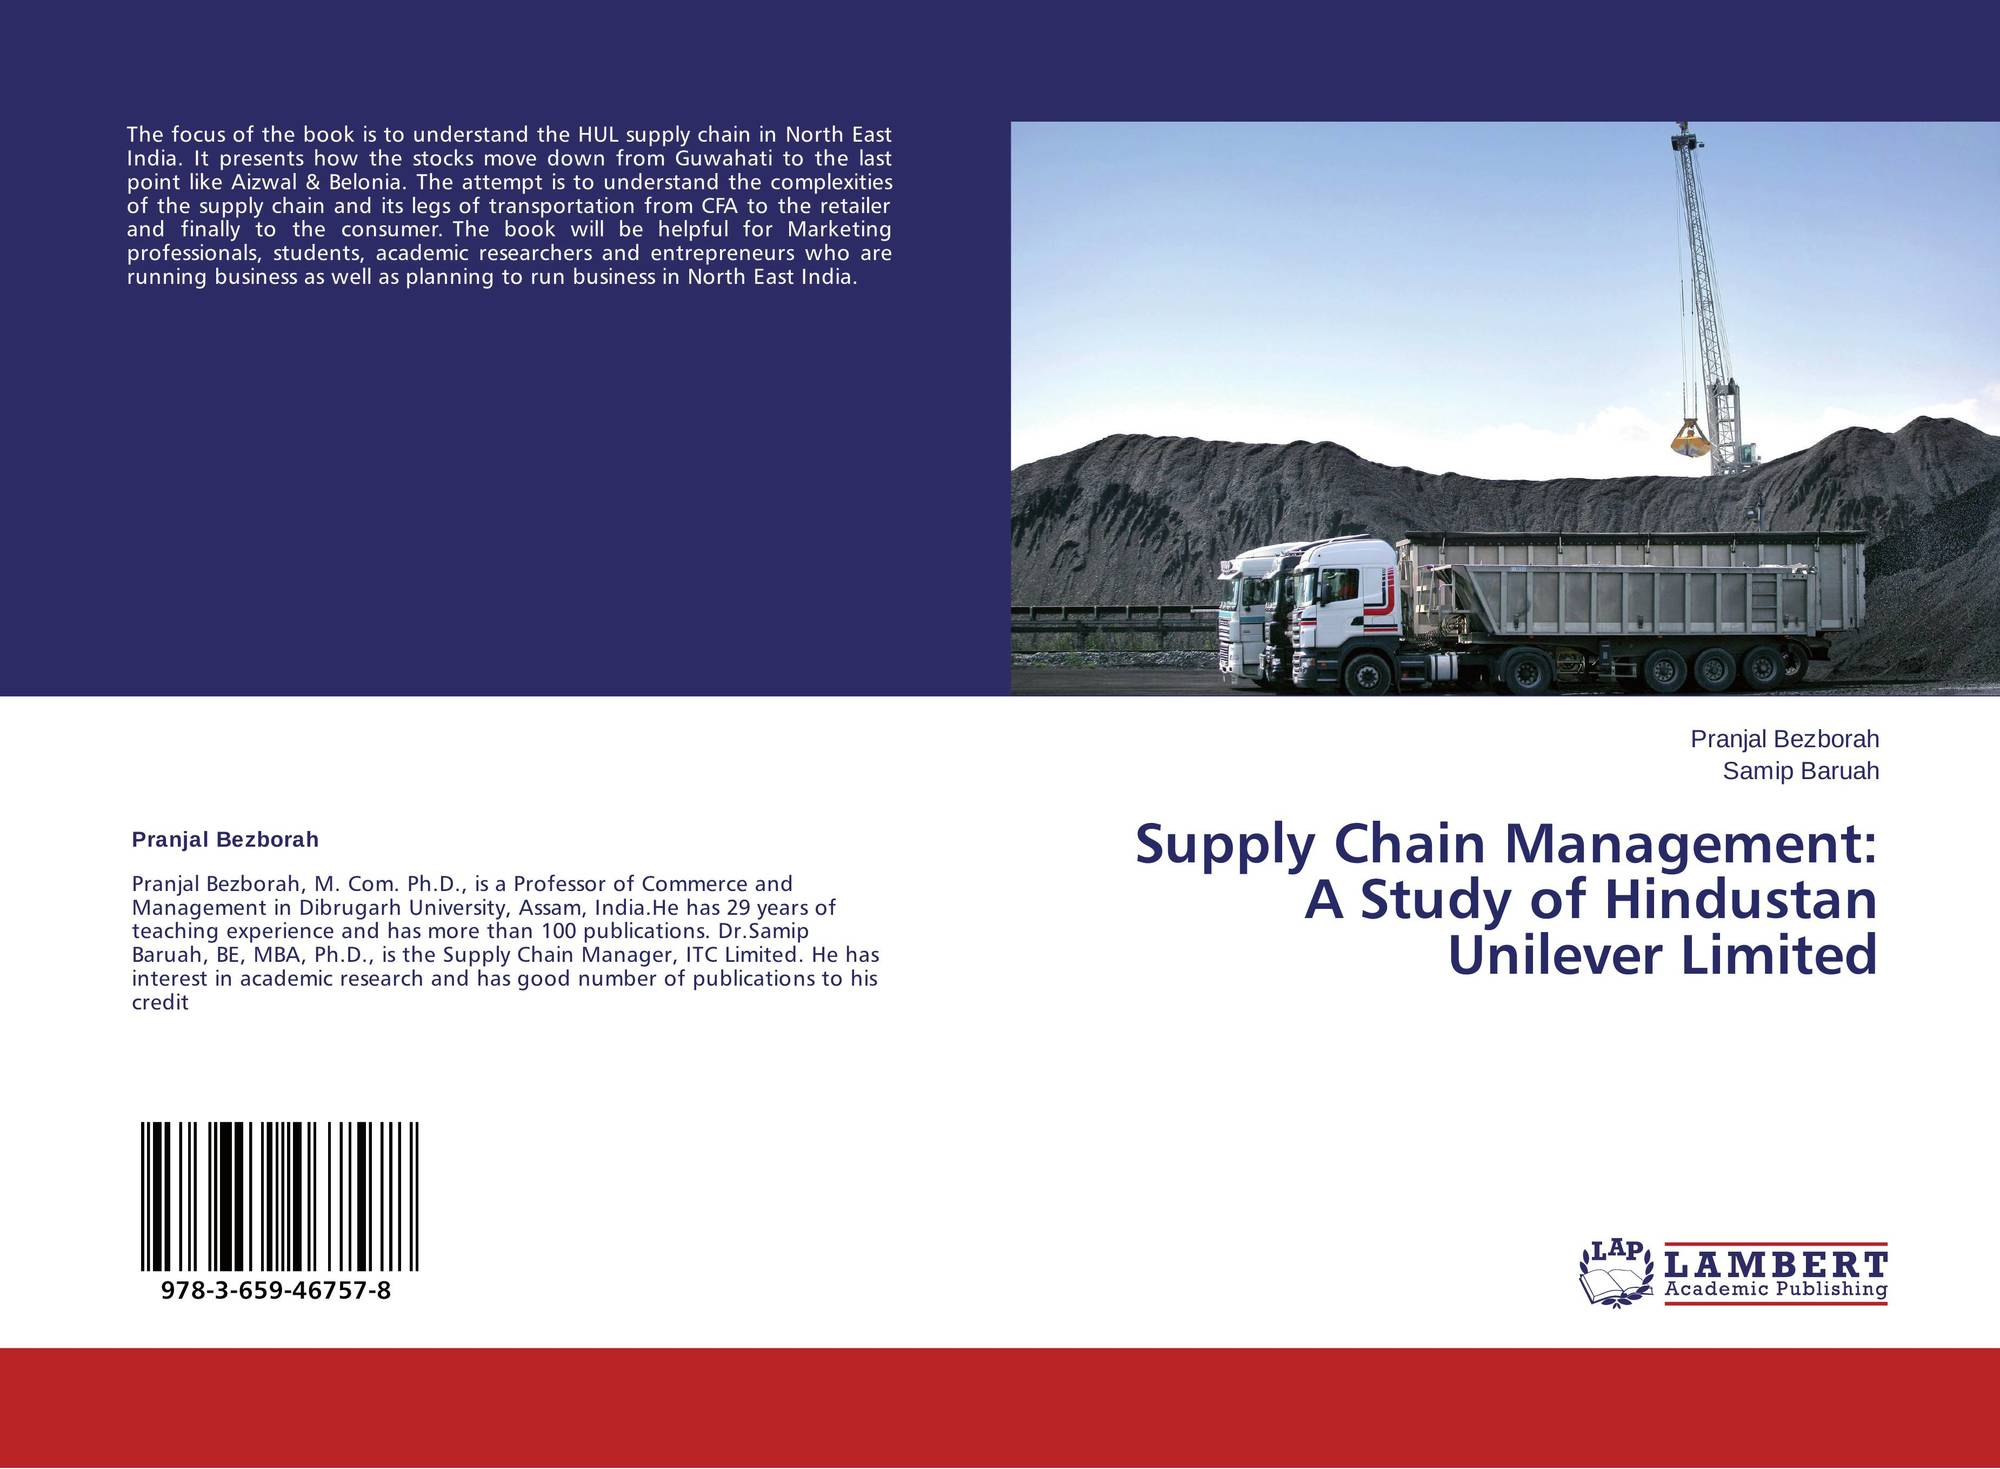 supply chain management solution for hindustan Unilever supply chain management 1  • kalido was used as a information integration solution to collect and  supply chain management of hindustan.